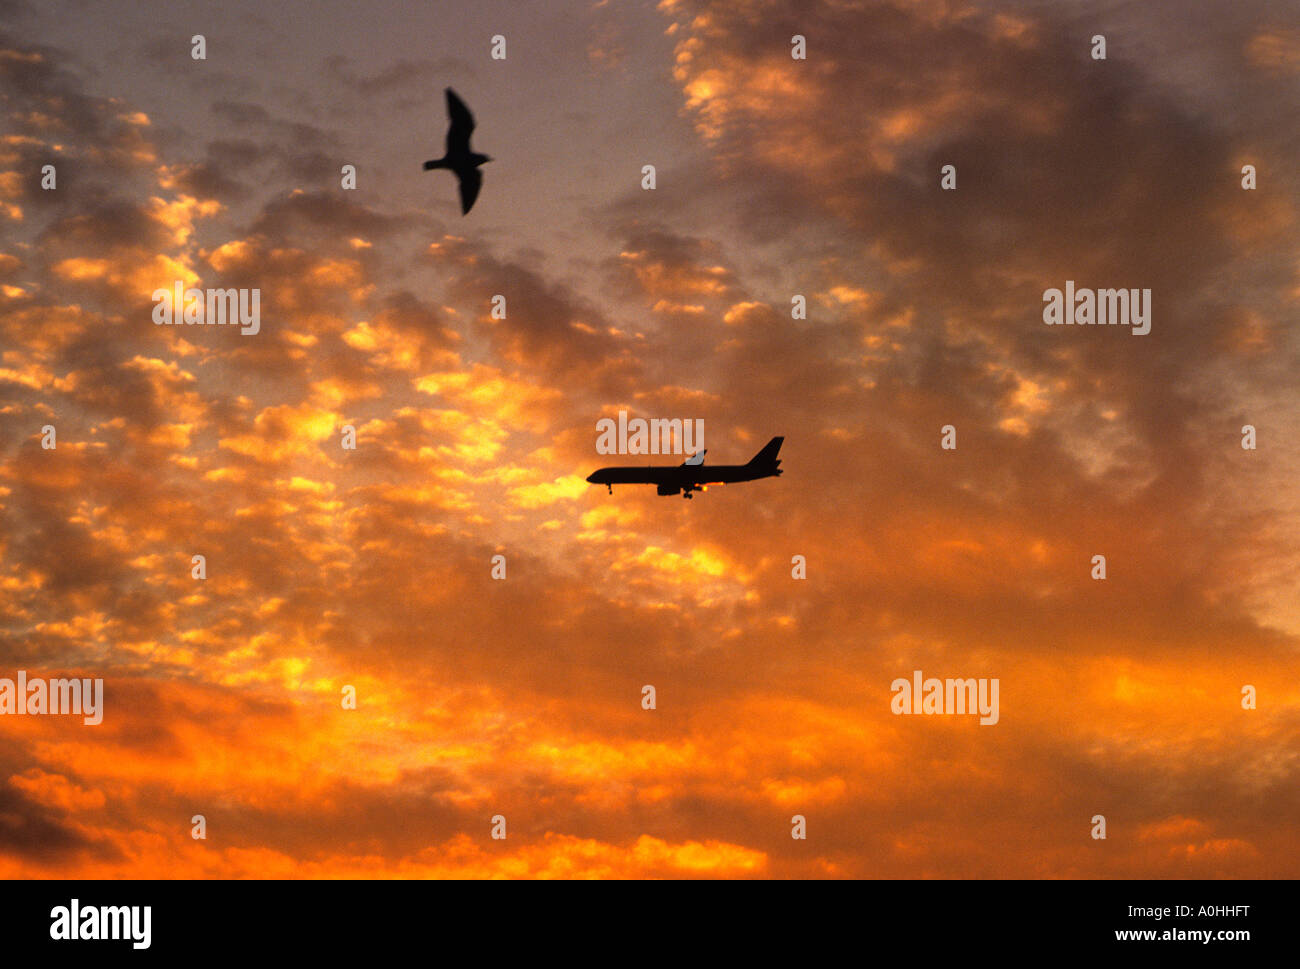 Airplane Plane Flying Against Colorful Clouds at Sunset Sandra Baker - Stock Image